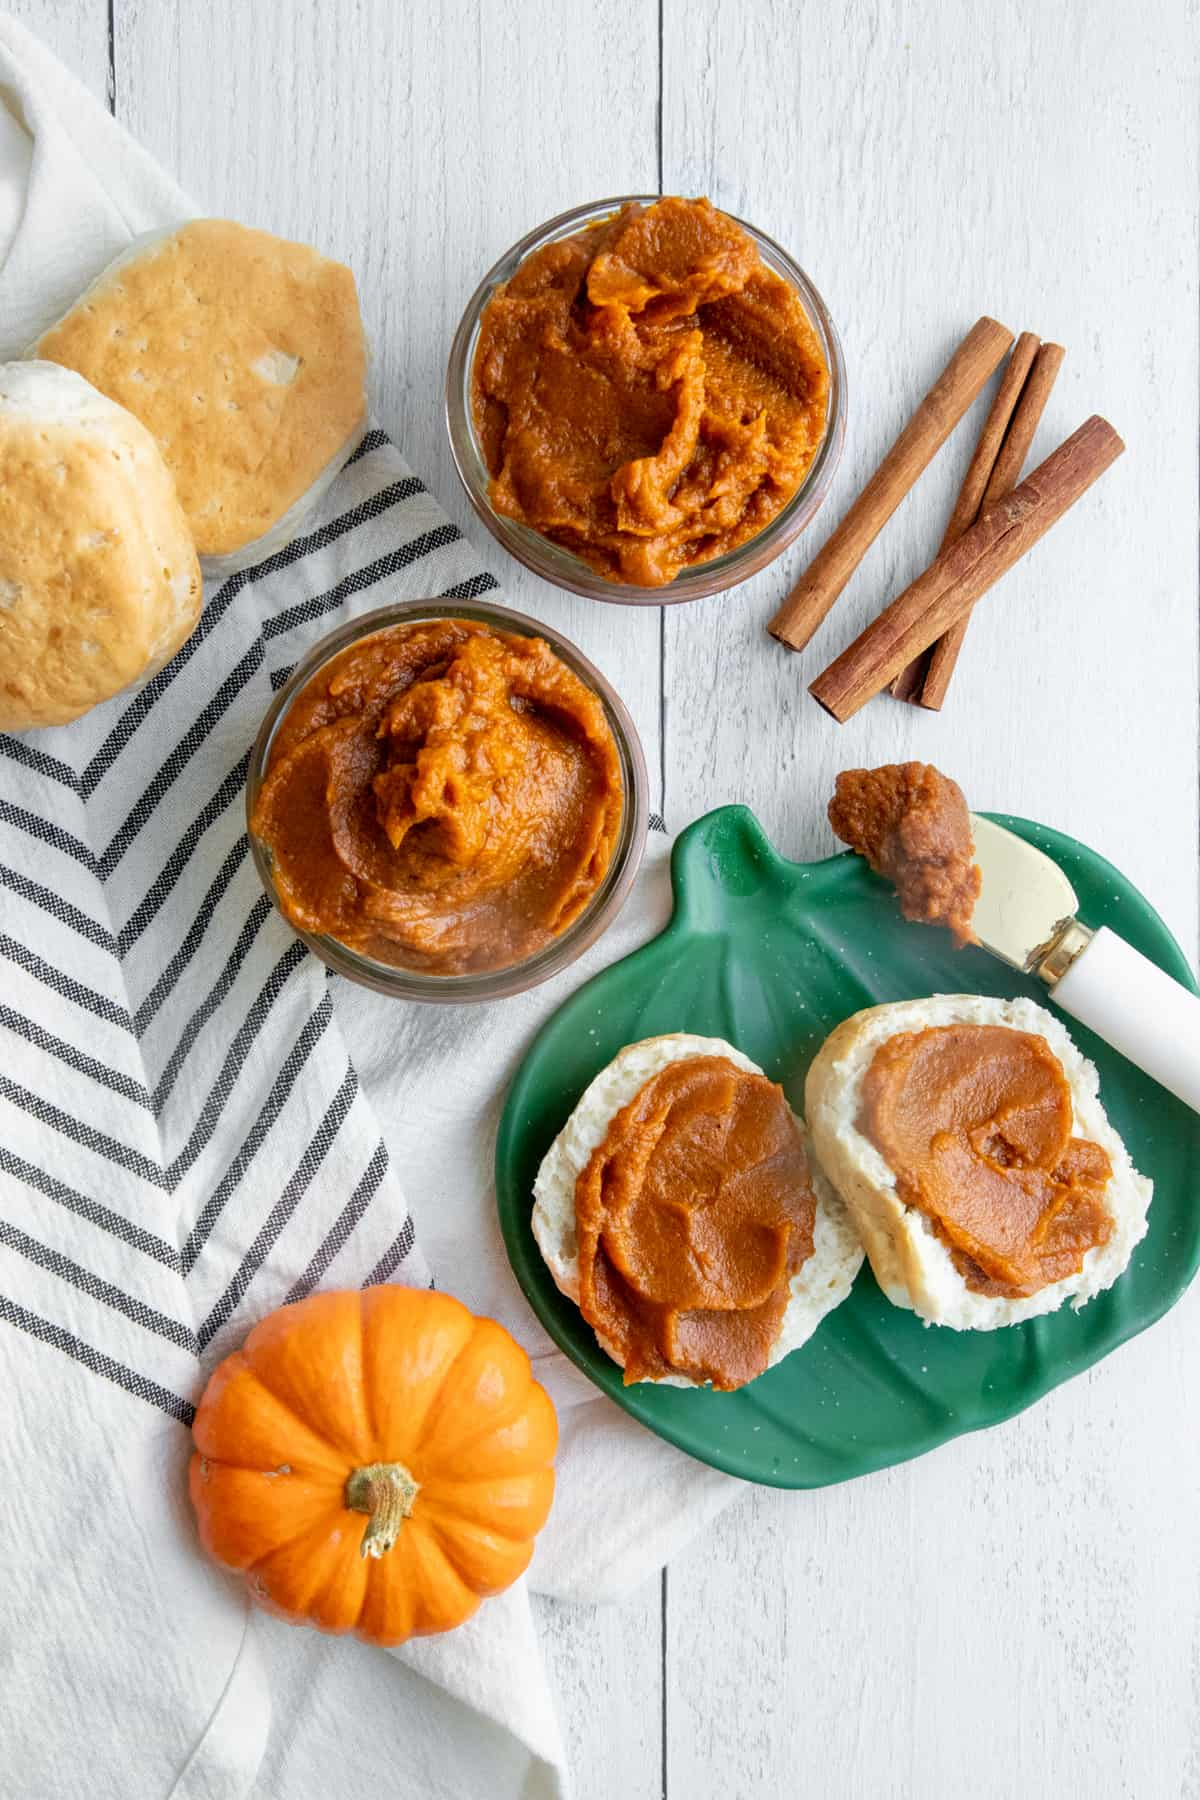 Pumpkin butter spread on a split biscuit, which is sitting on a pumpkin-shaped plate.